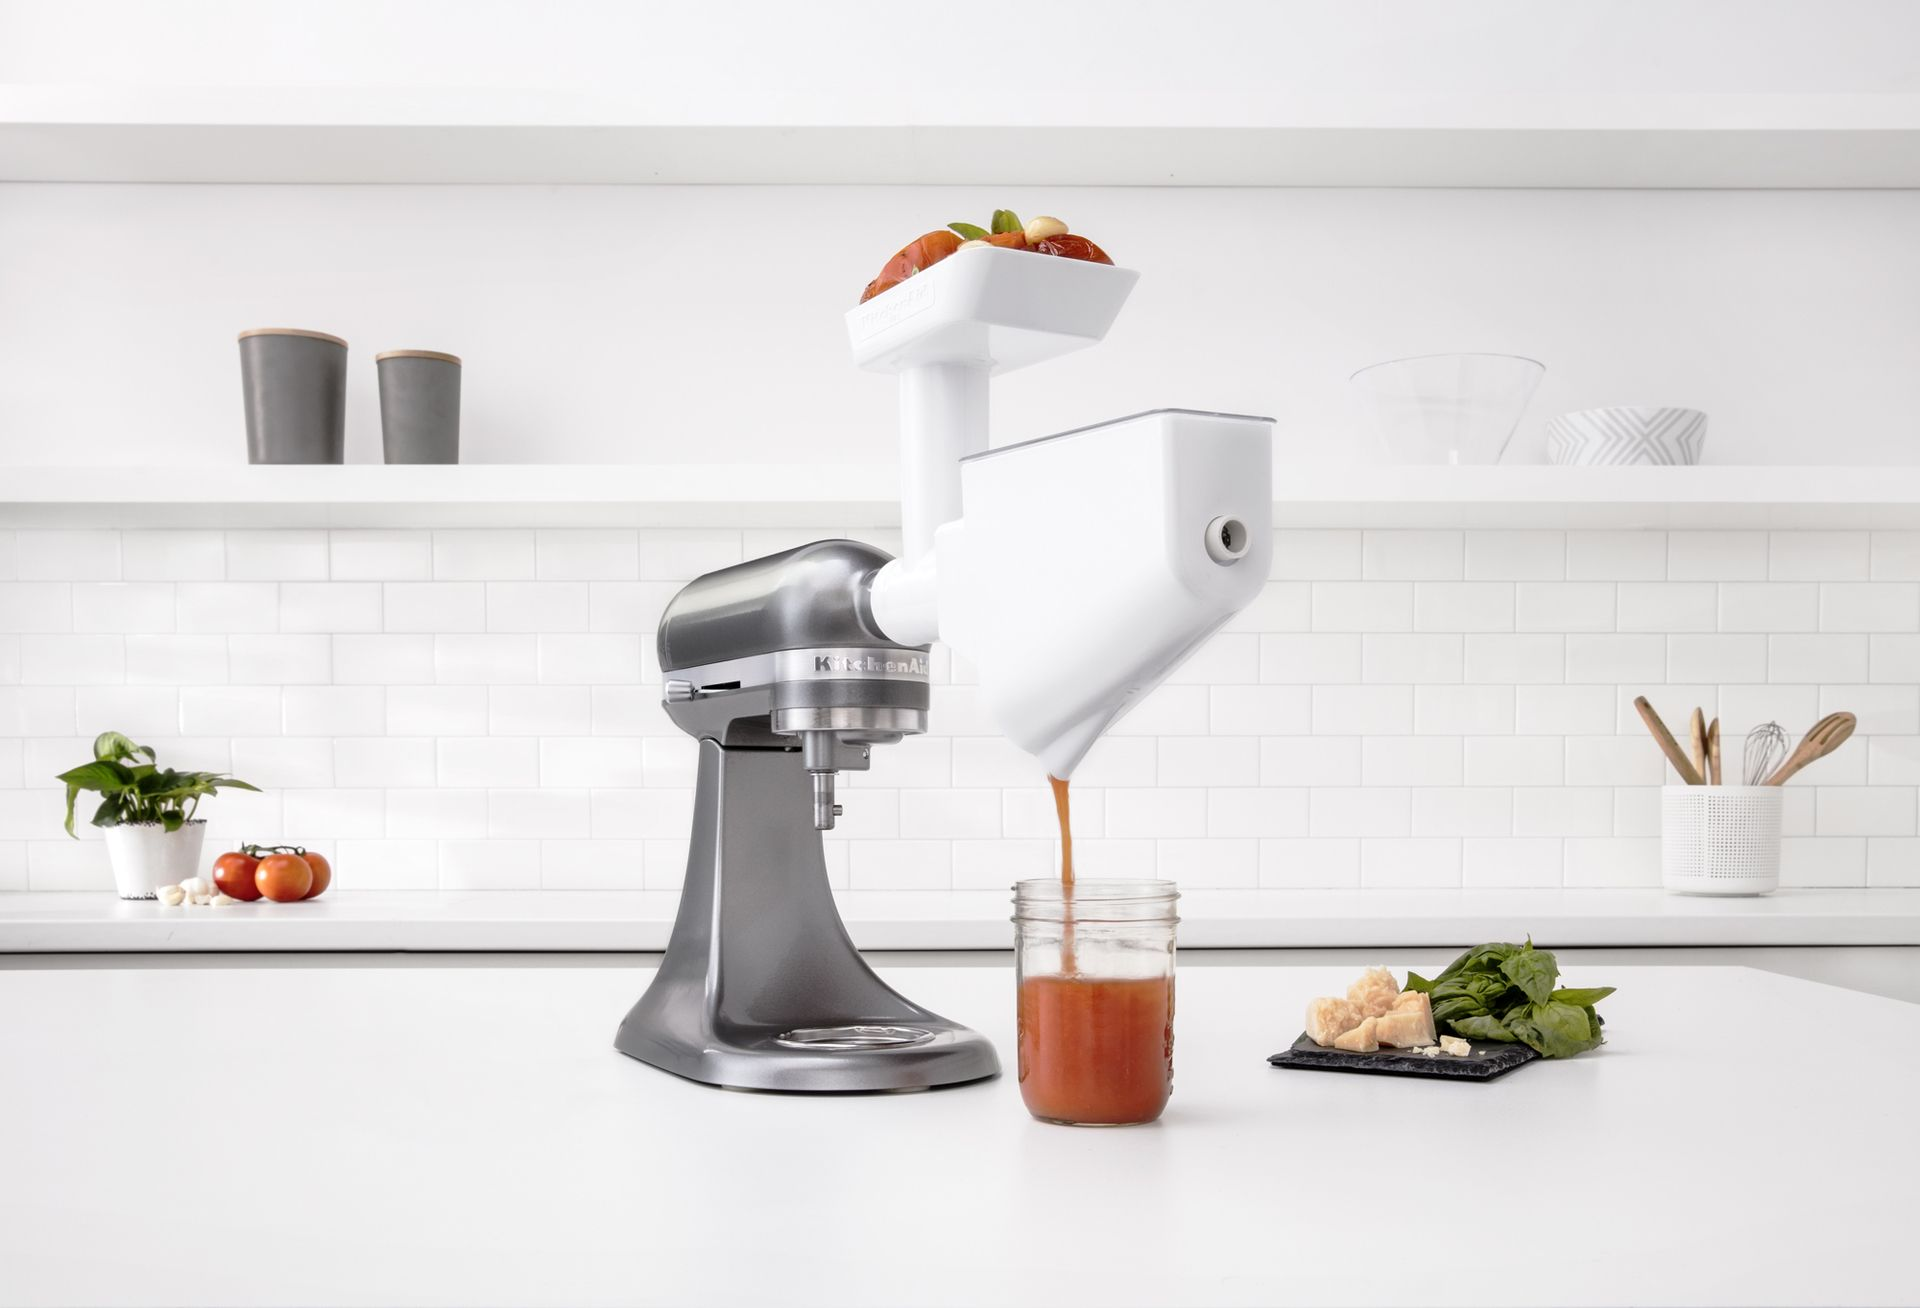 Kitchenaid With Fruit Vegetable Strainer Fvsp Must Be Used In